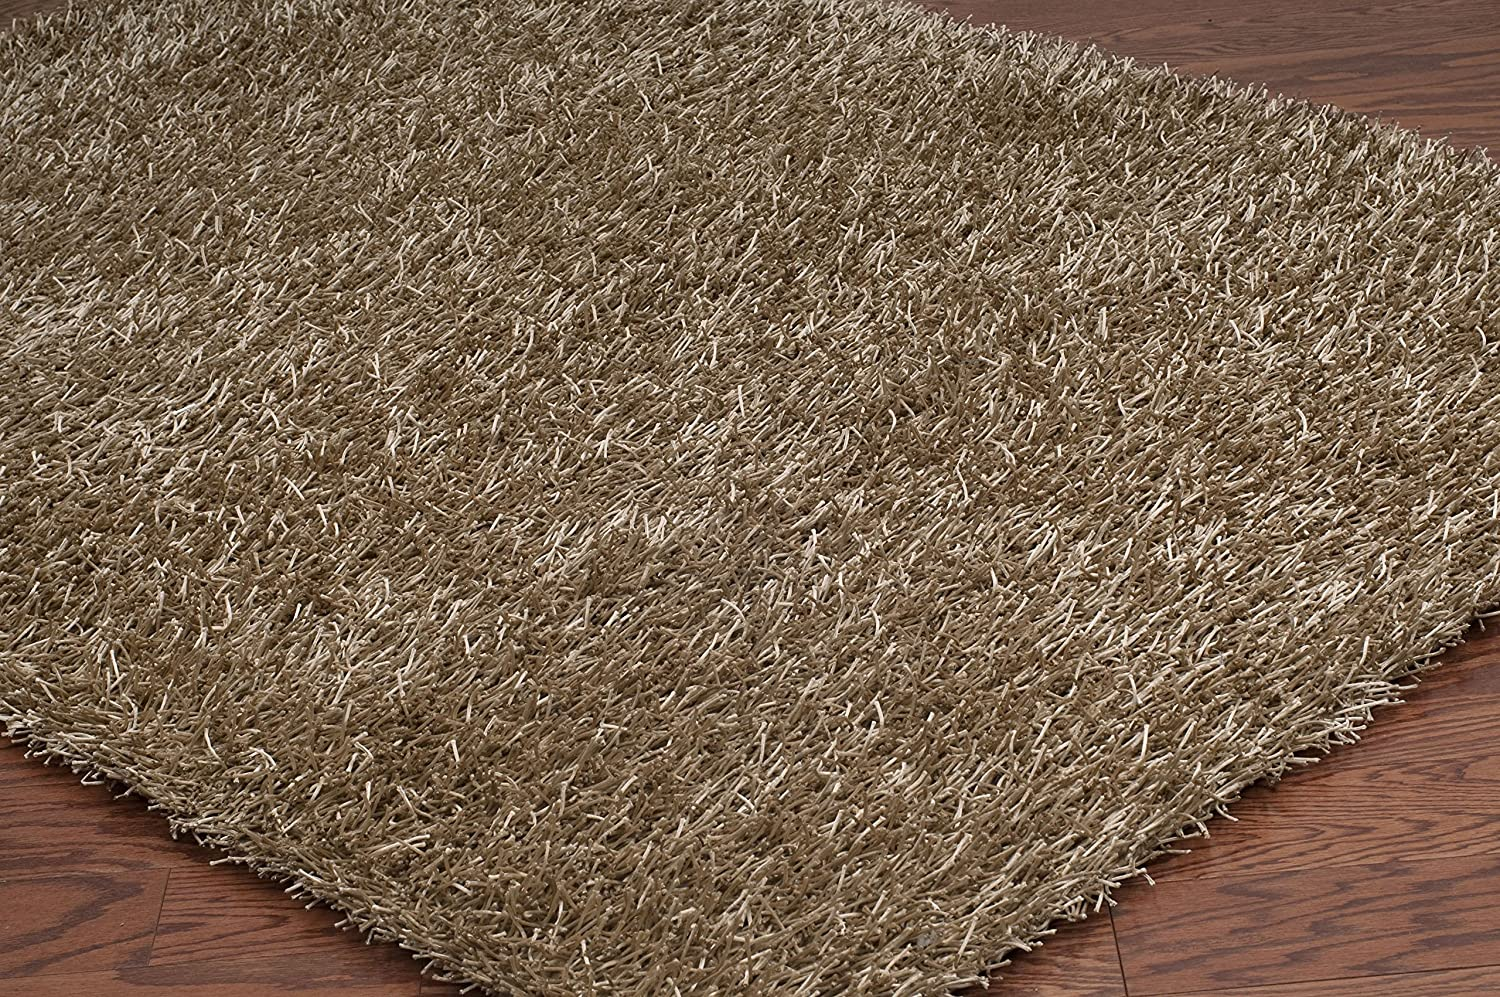 Kempton polyester area rug burgundy merlot colored 3 x3 area rugs - Amazon Com Rizzy Home Kempton Collection Knmkm231800880609 Hand Tufted Area Rug 6 X 9 Tan Kitchen Dining